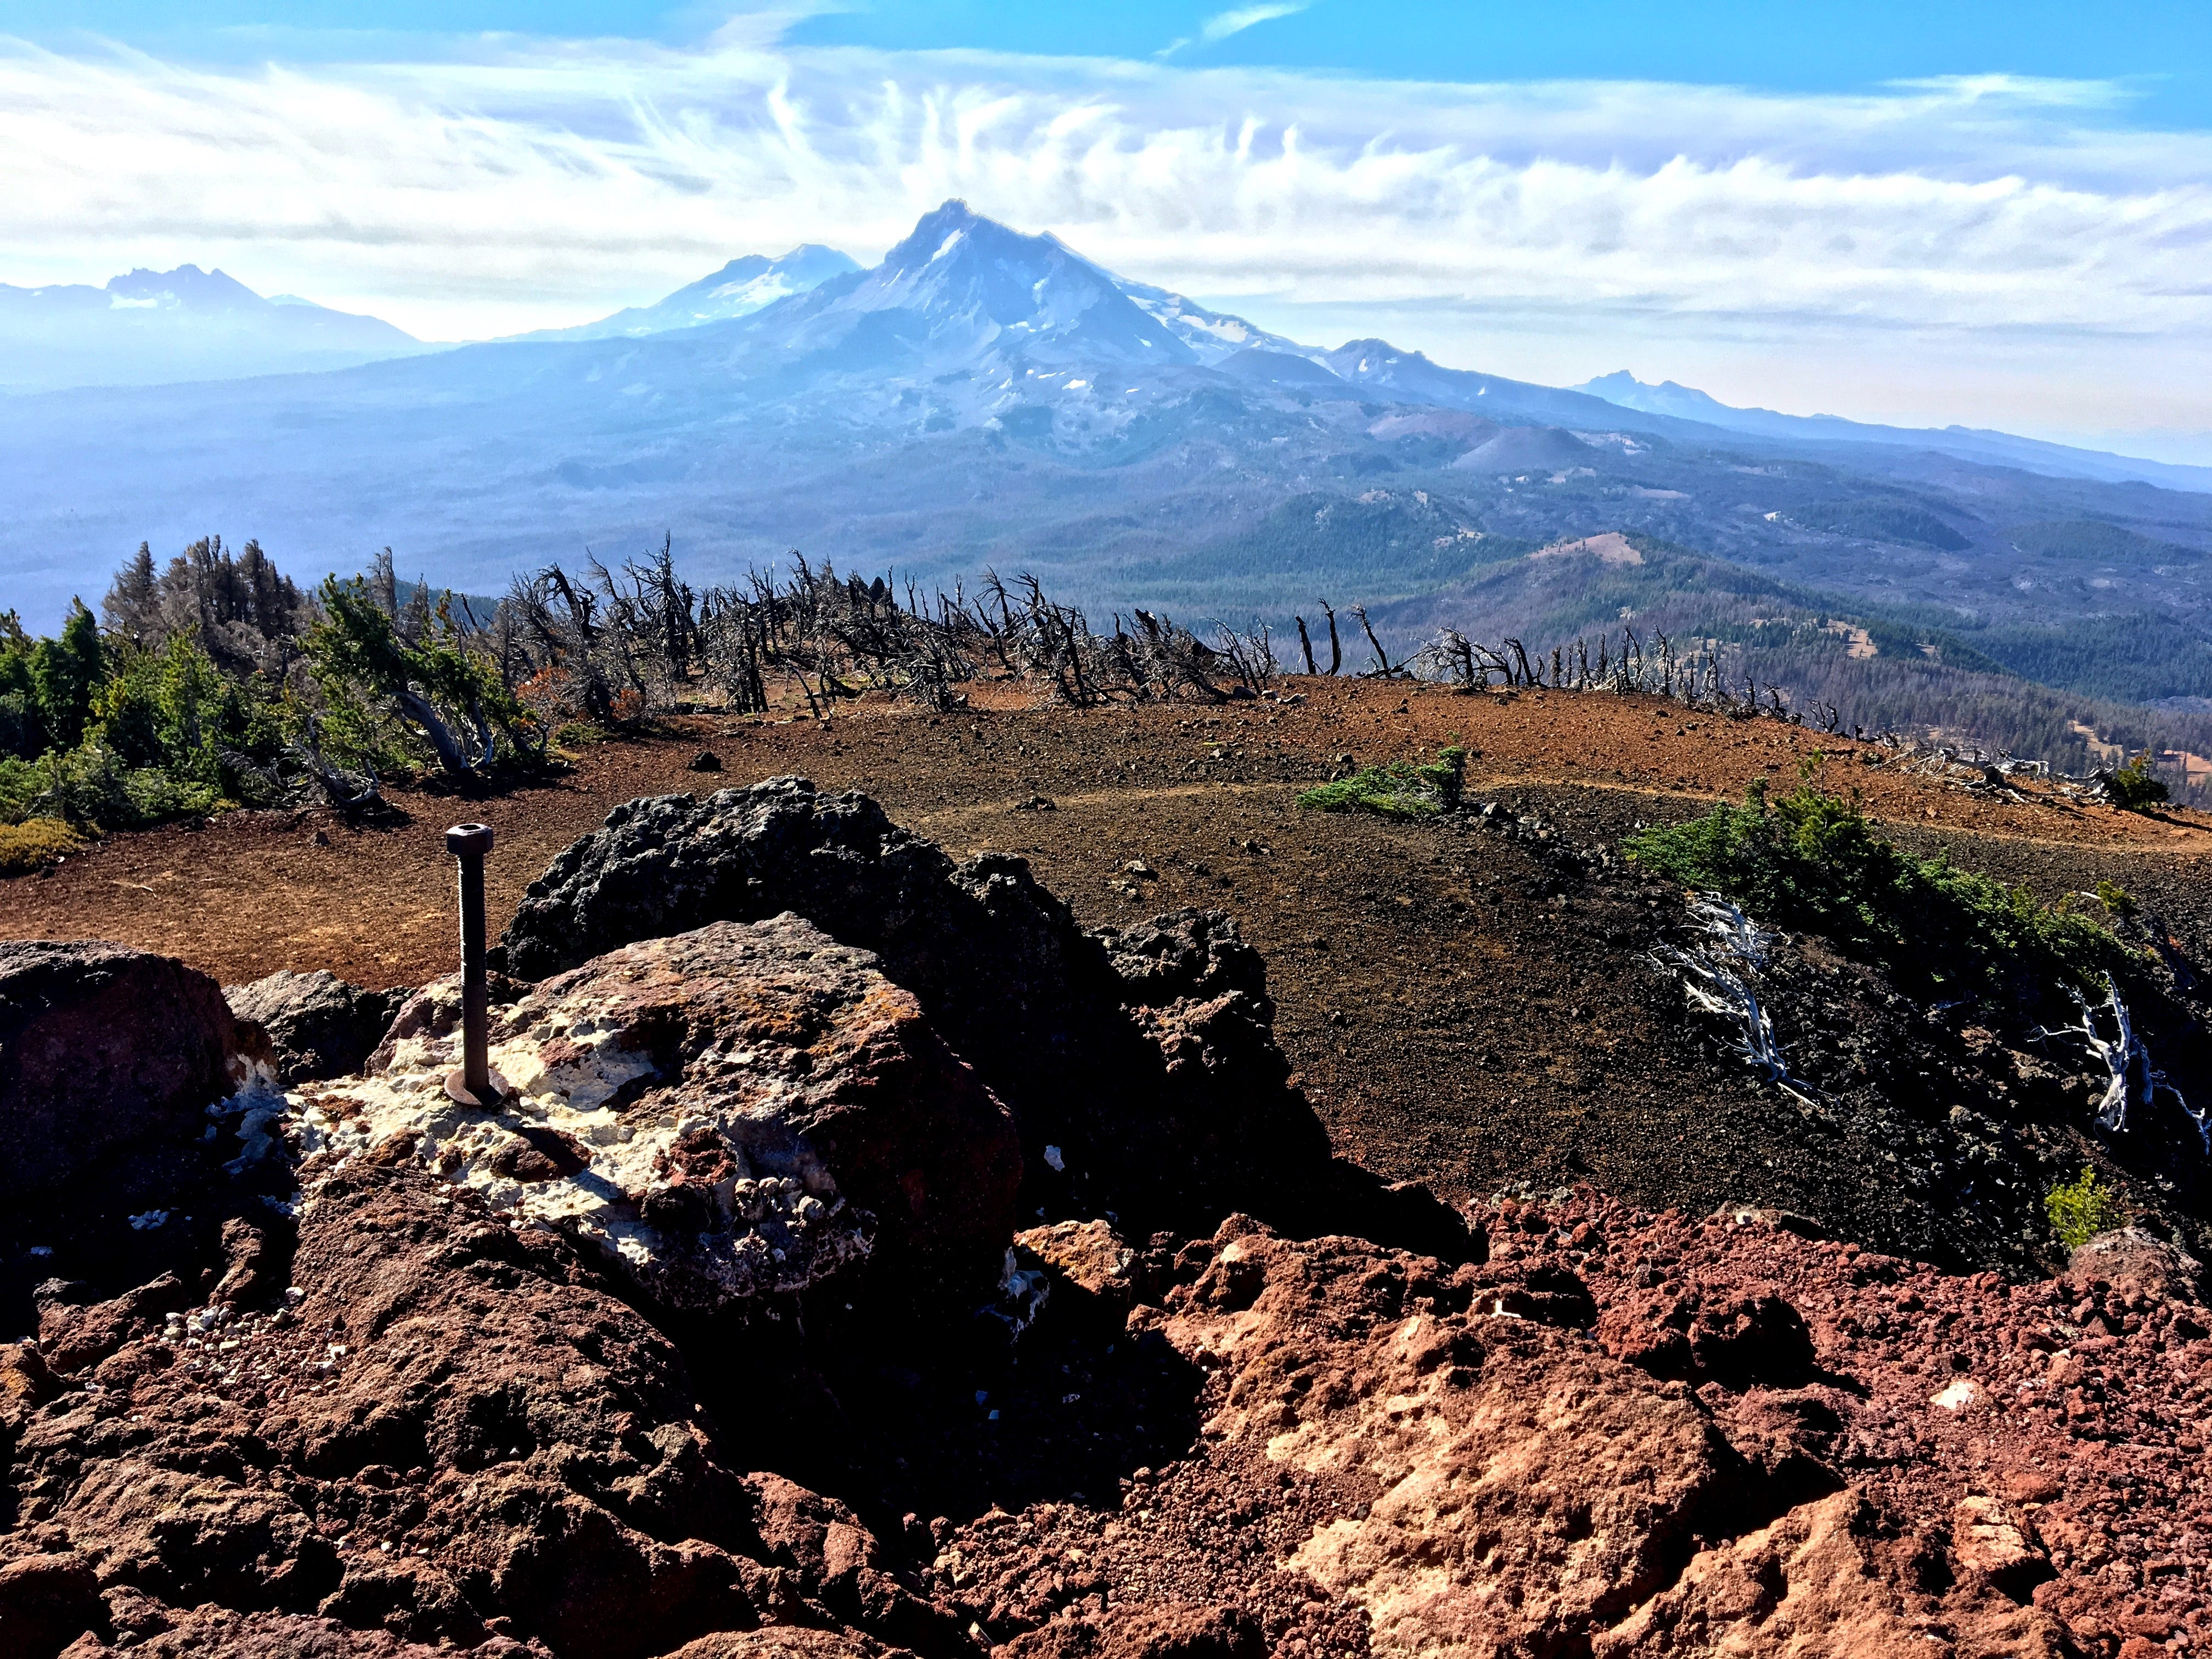 View of North and Middle Sister from the summit of Black Crater in the Three Sisters Wilderness.